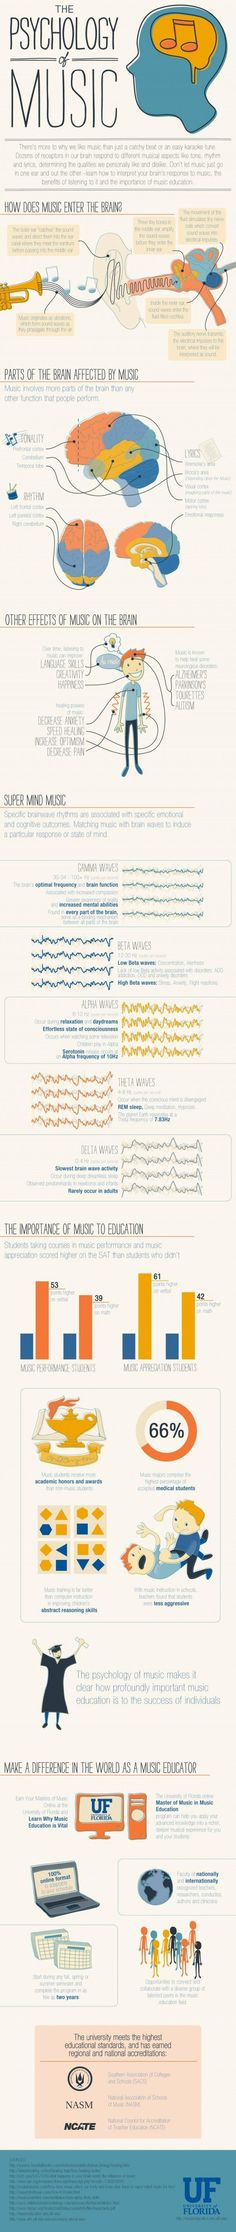 the-psychology-of-music_510e25927e035-640x6055.jpg (640×6055)